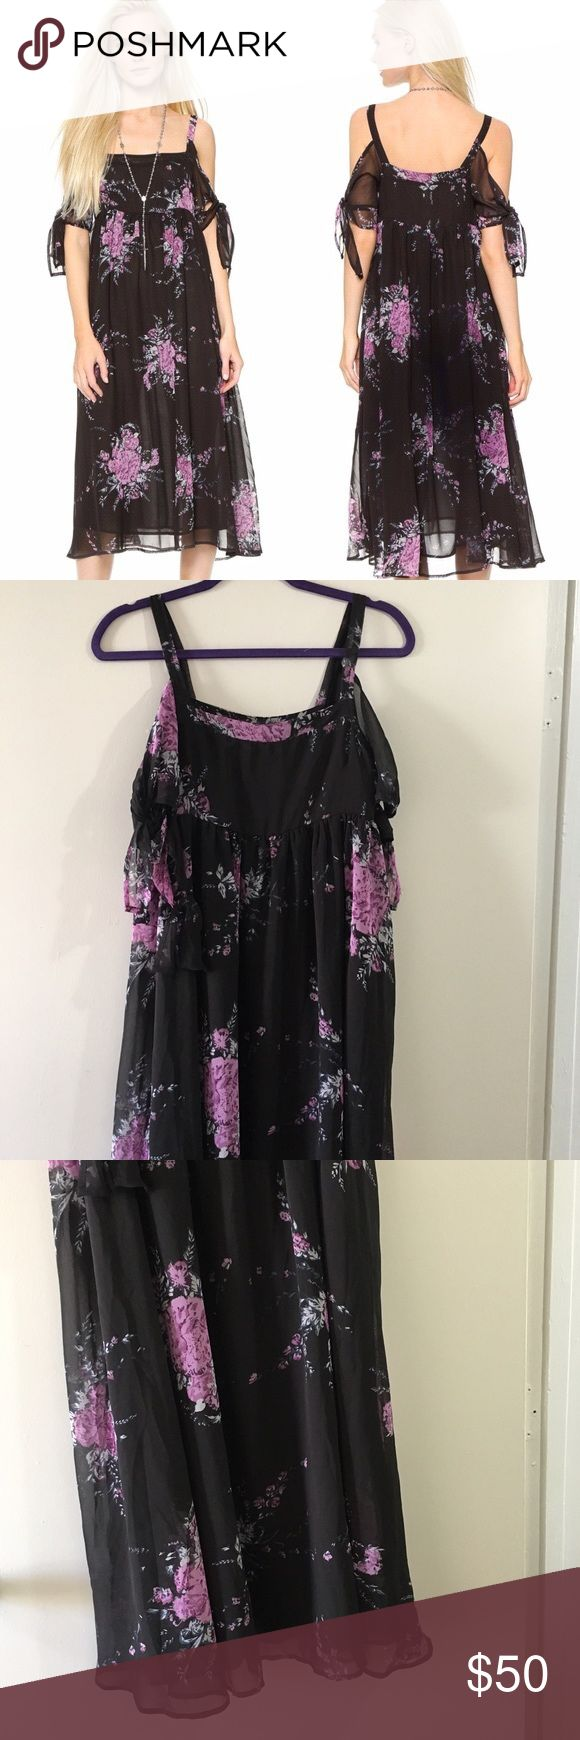 """Free People Tied To You Midnight Floral Dress Absolutely stunning dress. It has the perfect vibe between boho and chic. It features an all over purple floral print in a black background (midnight combo), square neck, slim straps, off the shoulder short sleeves with double tie closures and enclosed side zipper.  Drapes beautifully. Length: 44.5"""" Bust: 16.25"""" Free People Dresses Midi"""